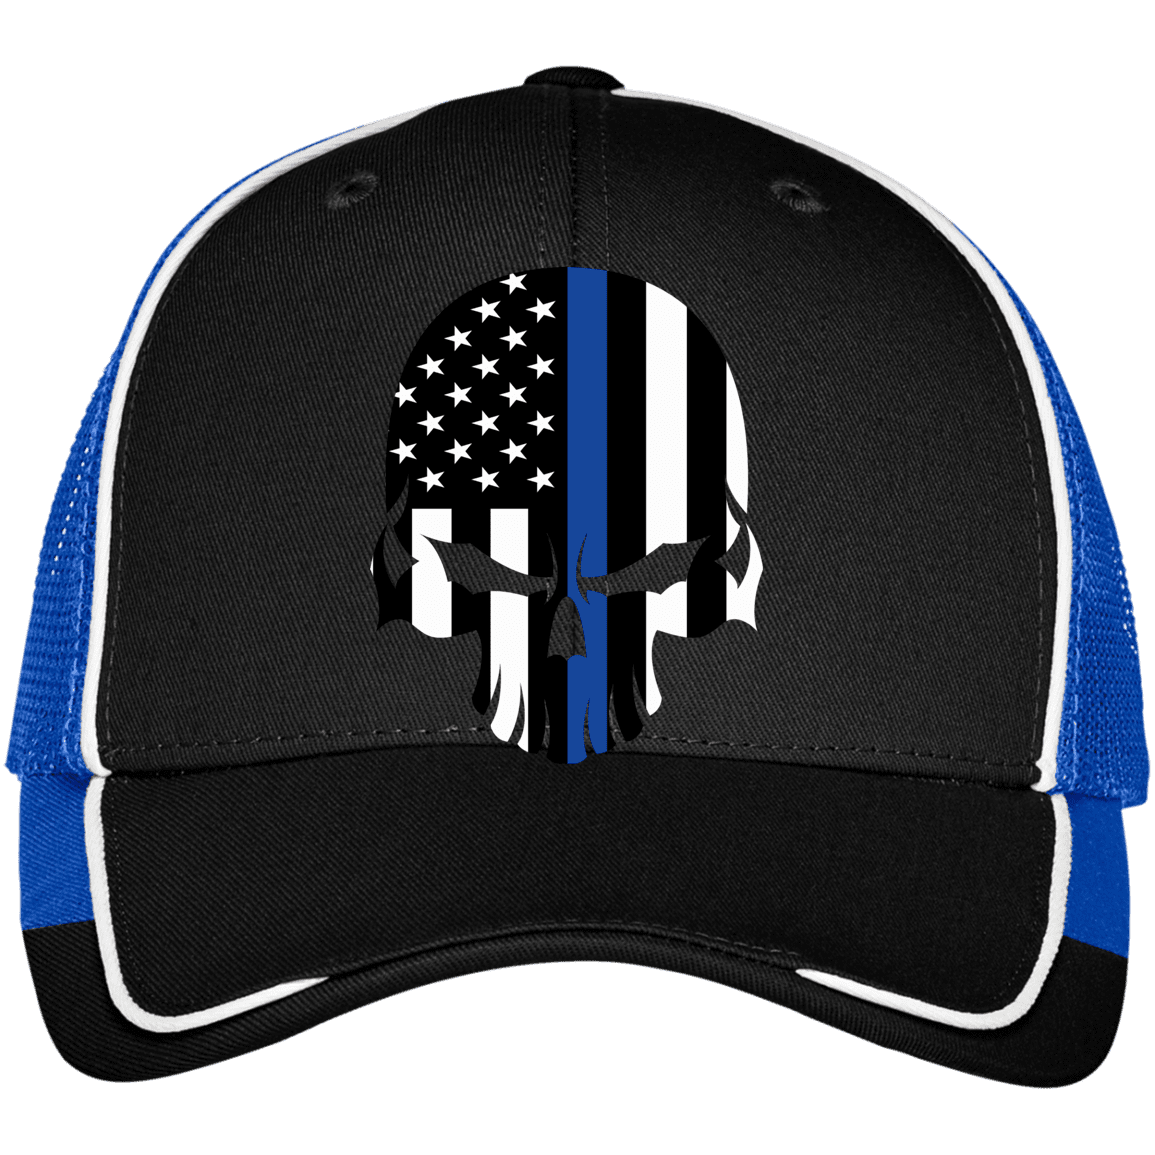 Thin Blue Line Bad Skull Mesh Back Cap